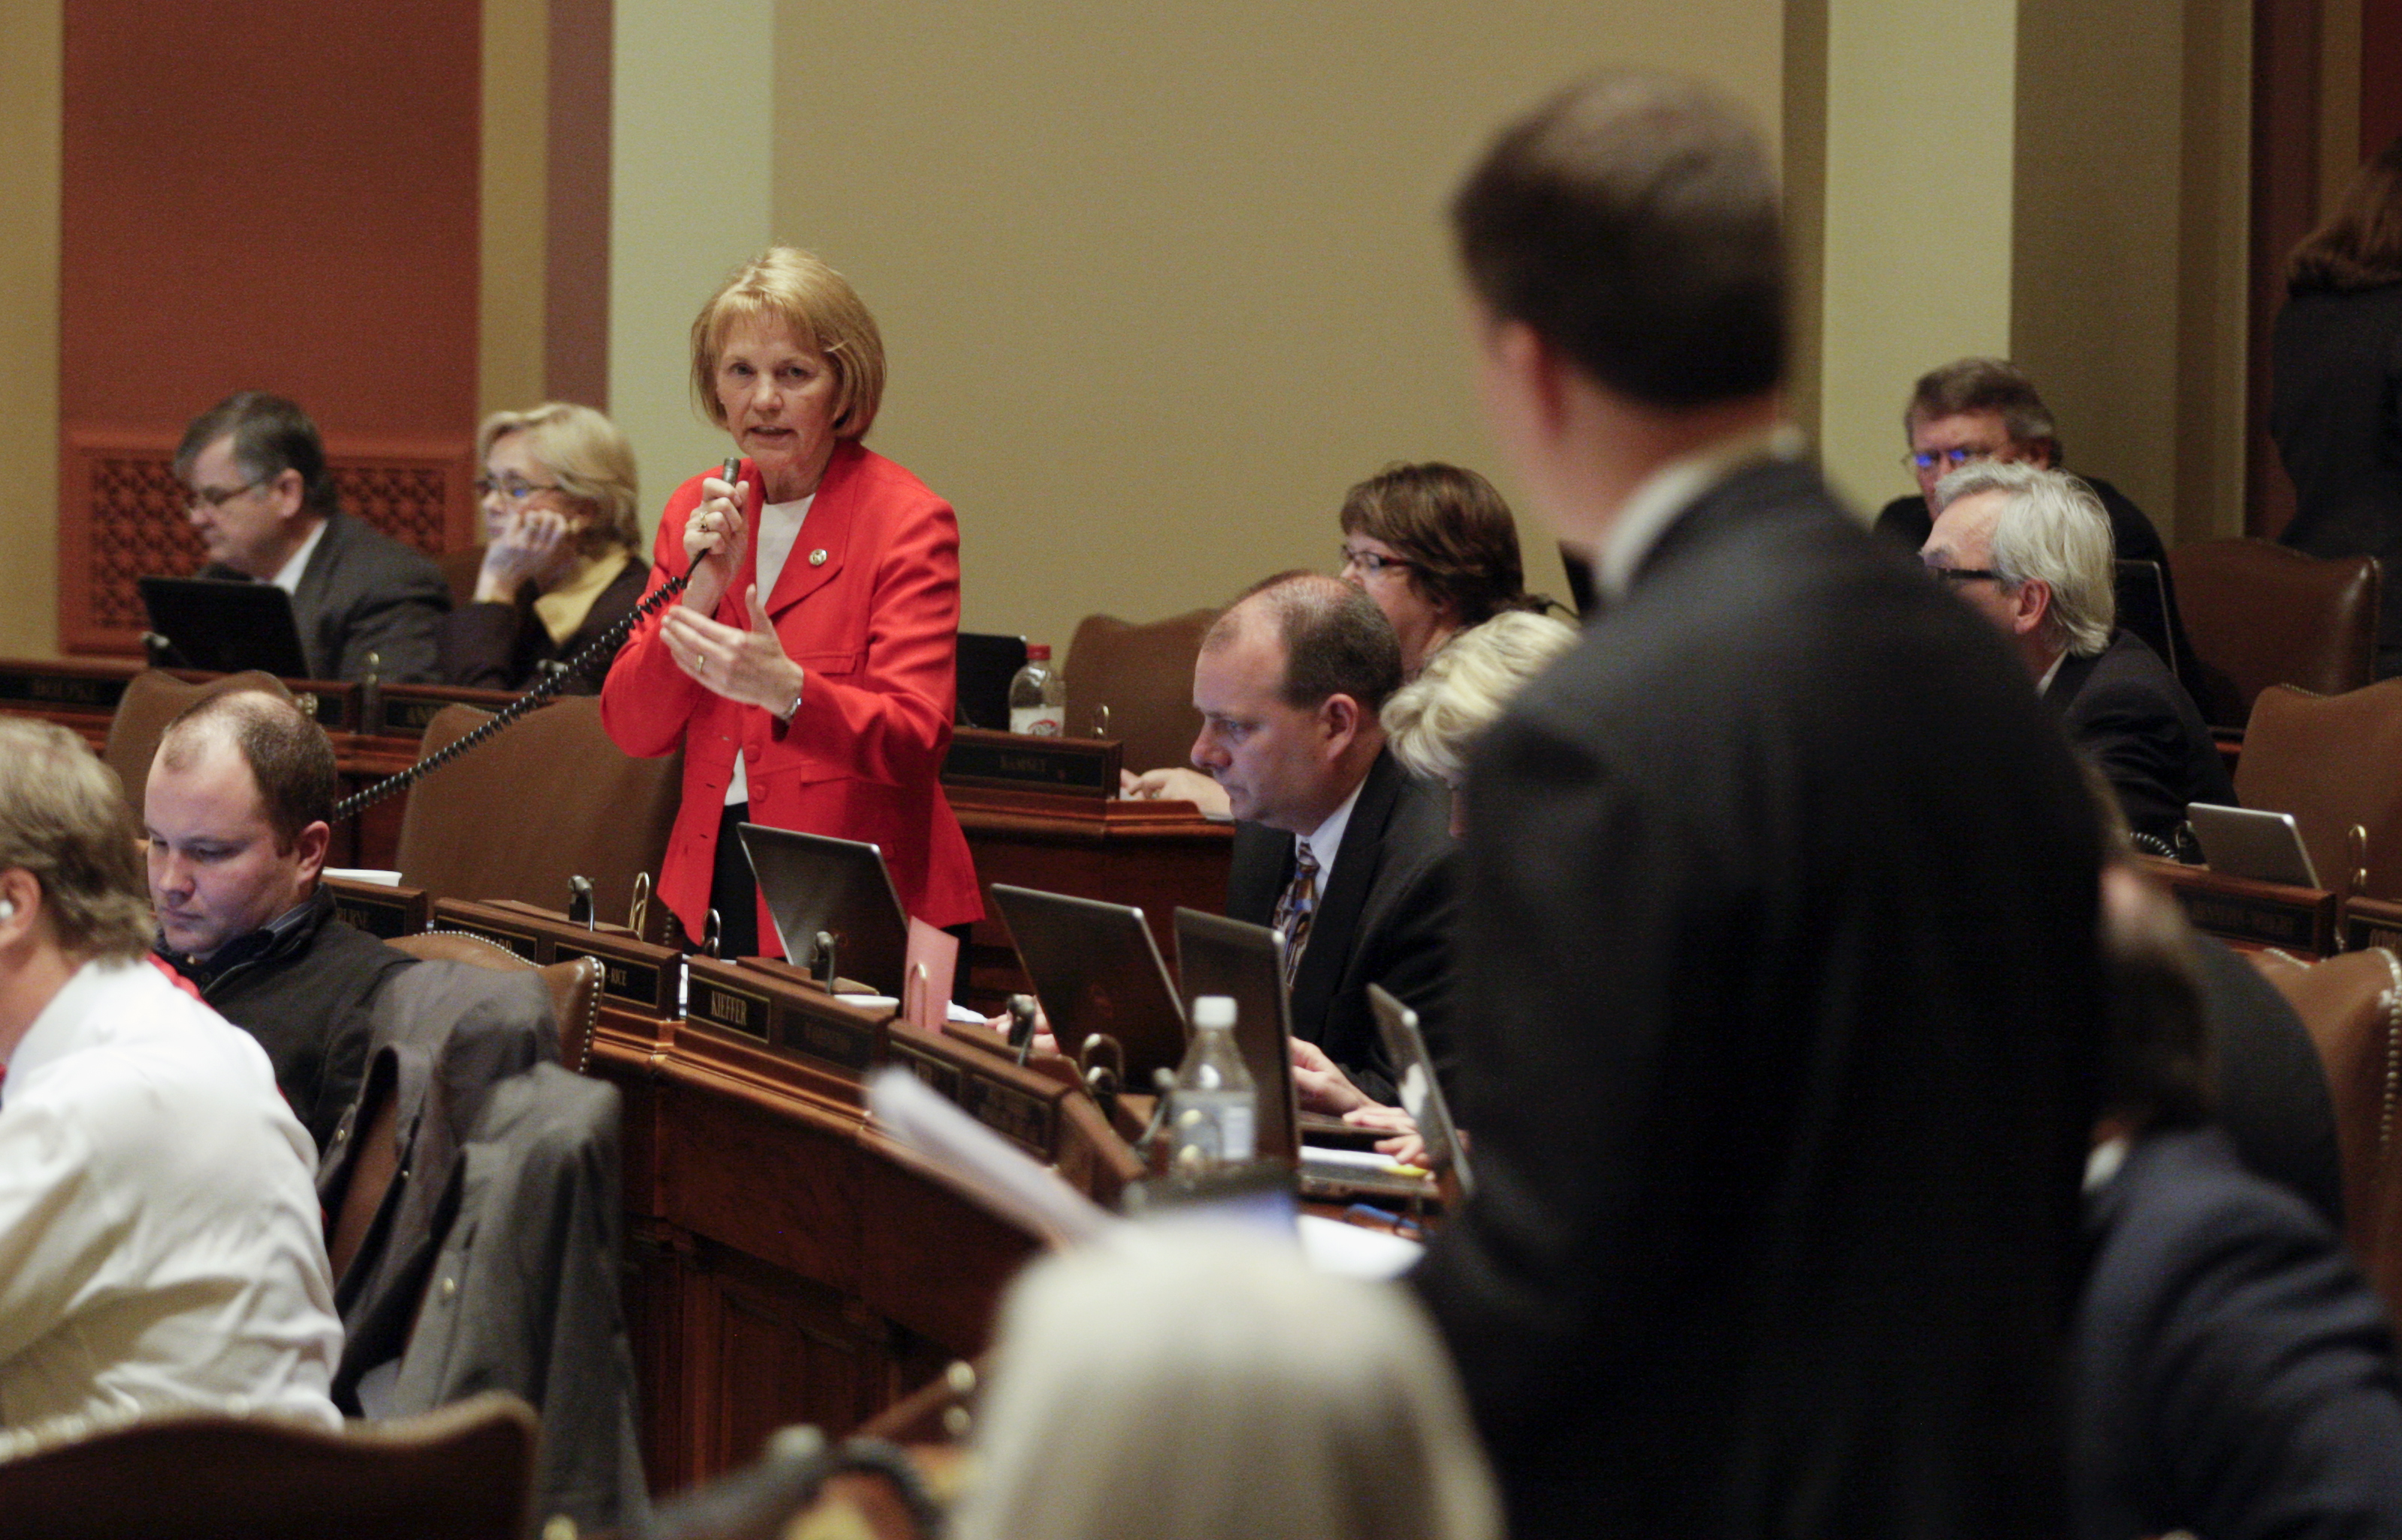 Rep. Mary Kiffmeyer responds to a question from Rep. Ryan Winkler during March 20 debate on her bill that proposes amending the state constitution to require voters to show a government-issued photo ID card at their polling place on Election Day. (Photo by Paul Battaglia)